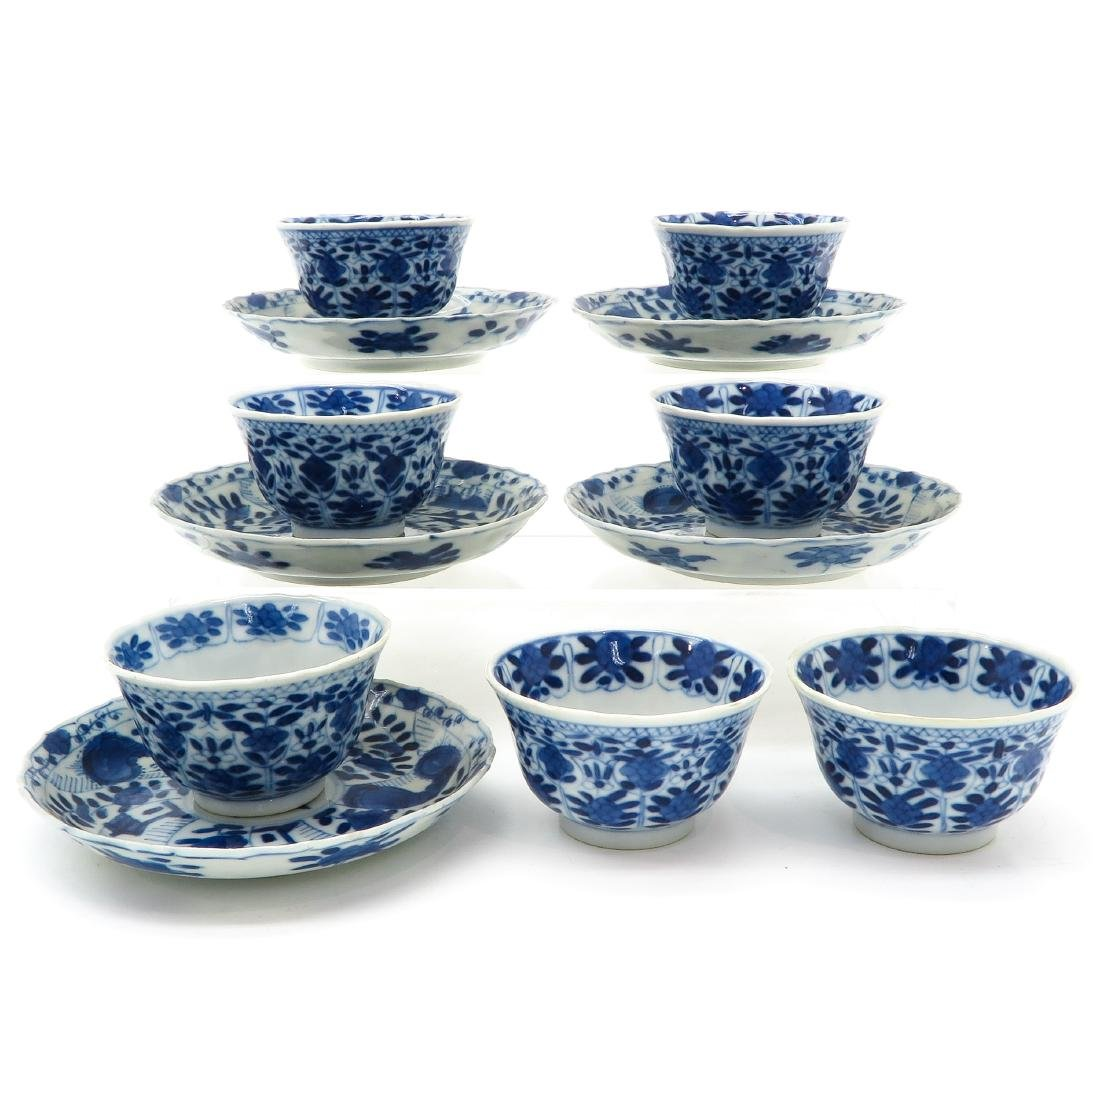 Lot of Cups and Saucers - 2